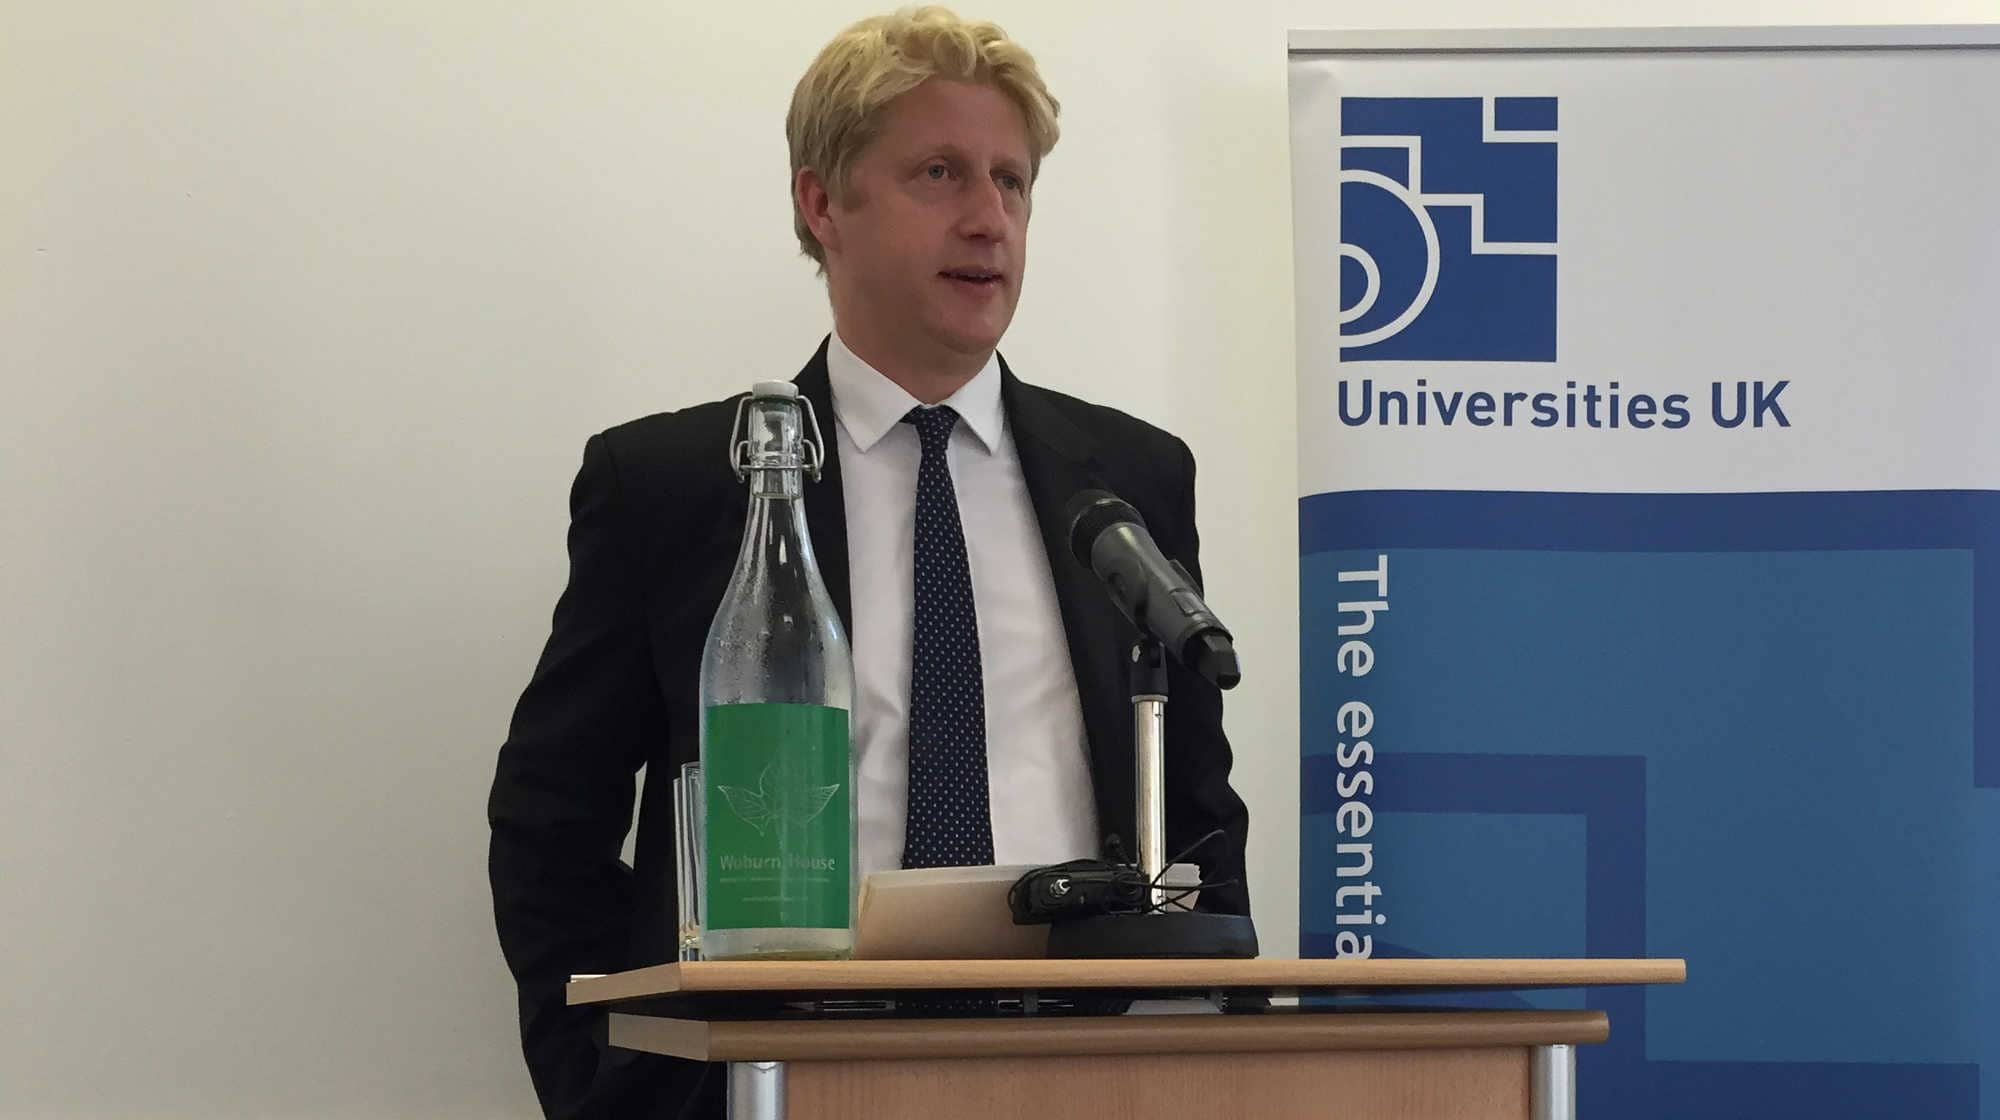 jo johnson speech wonkhe uuk small